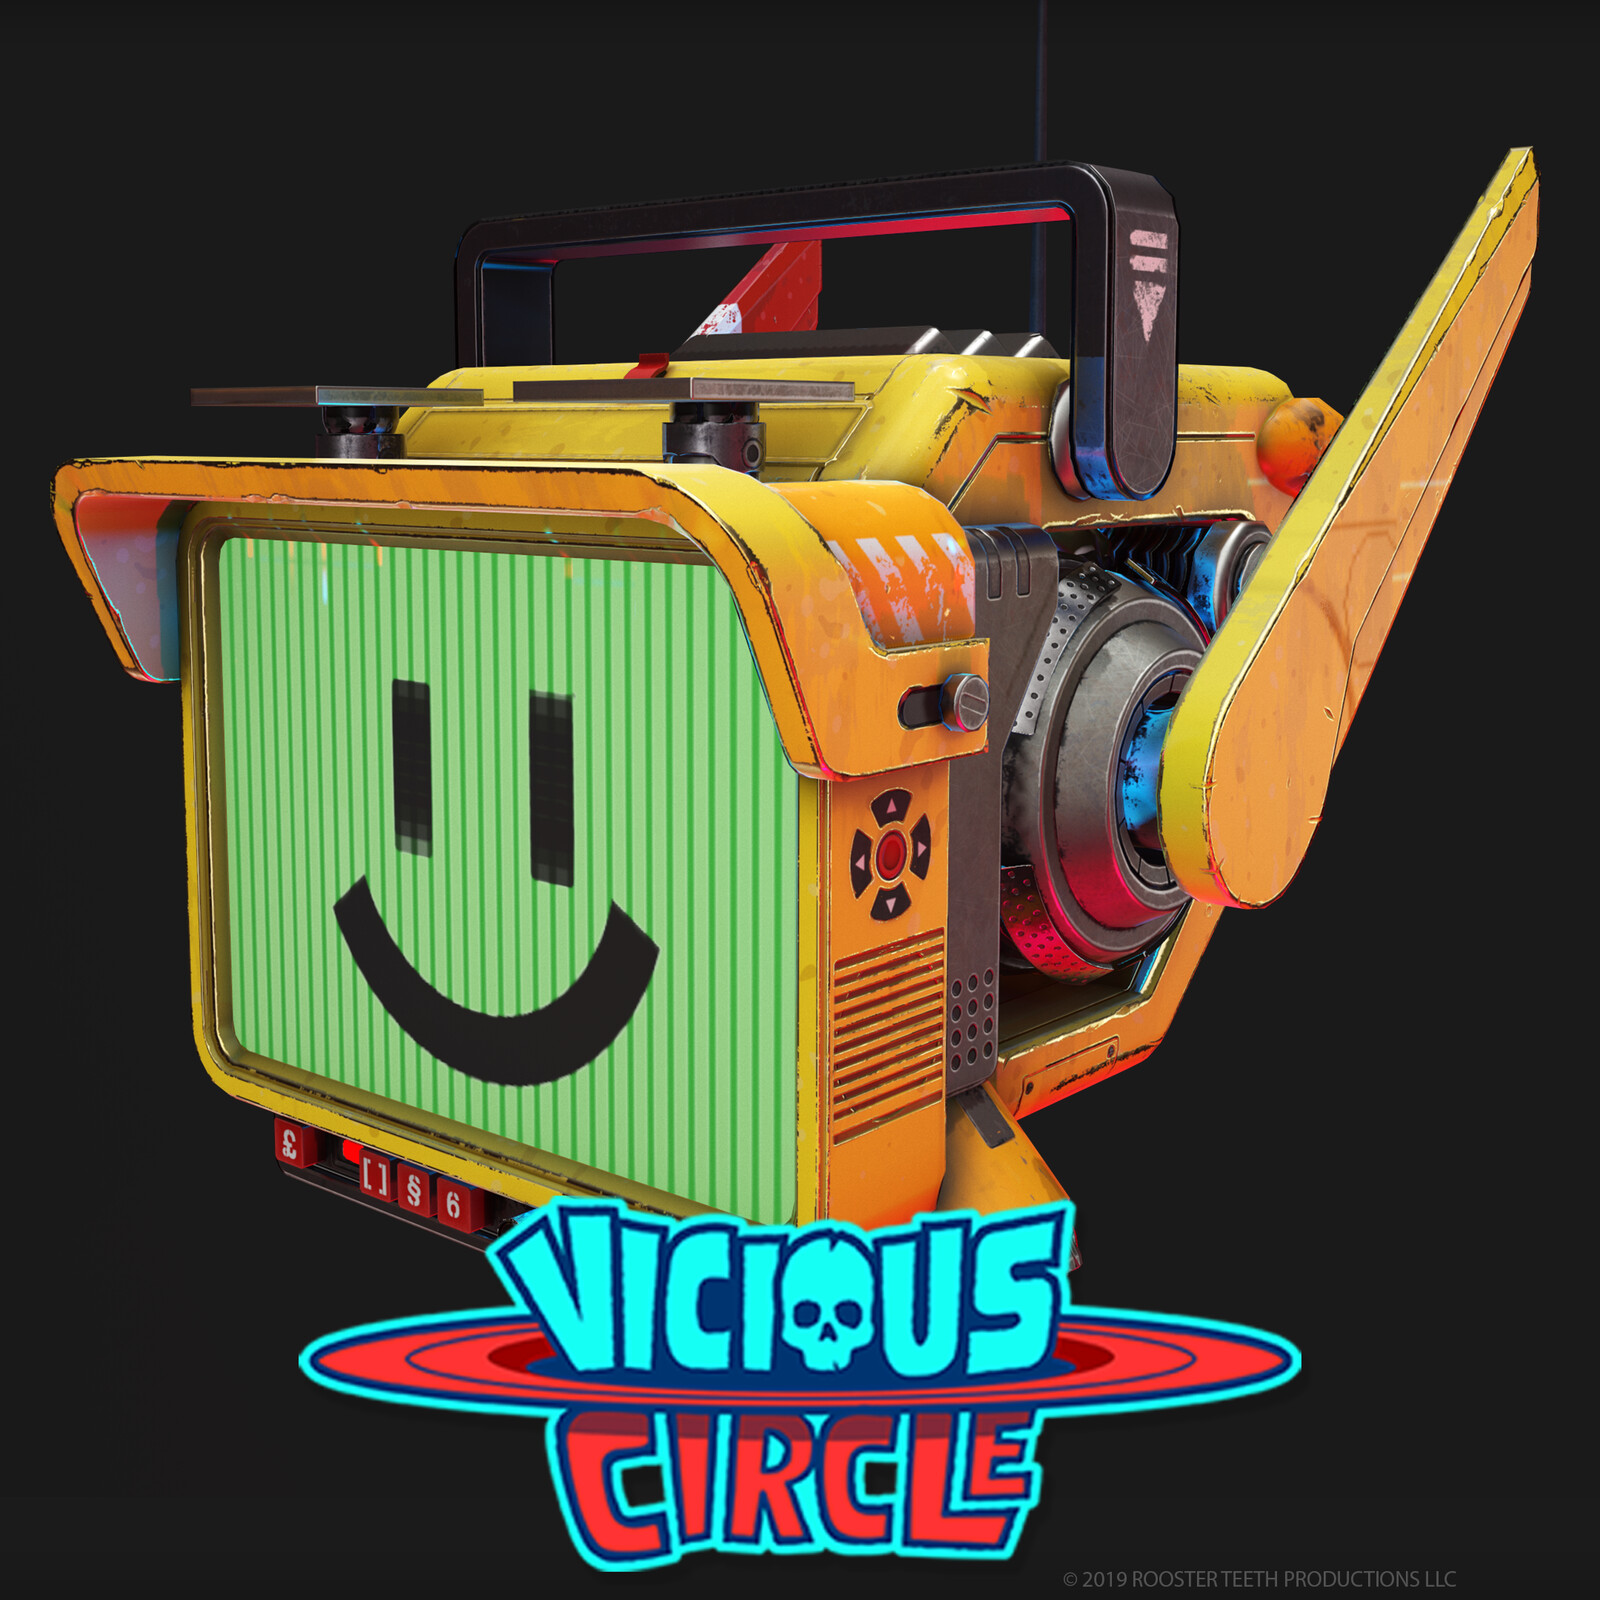 Vicious Circle - G.U.S (General Utility System)